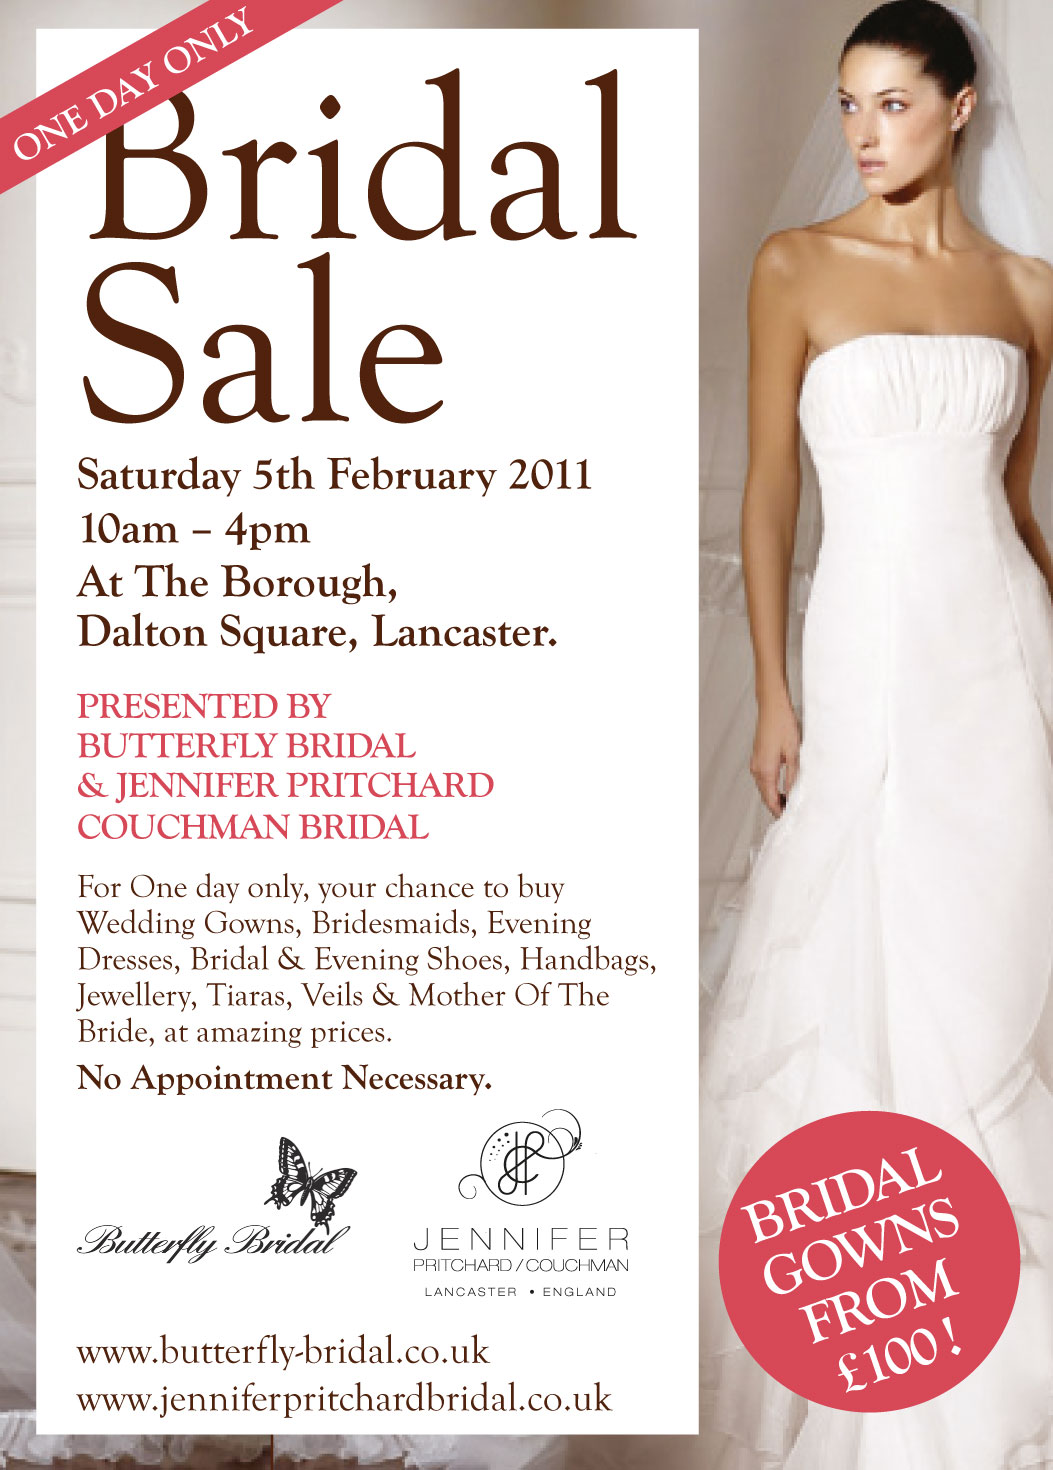 wedding wedding dress sales Jennifer Pritchard Bridal One Day Bridal Gown Sale at The Borough Lancaster